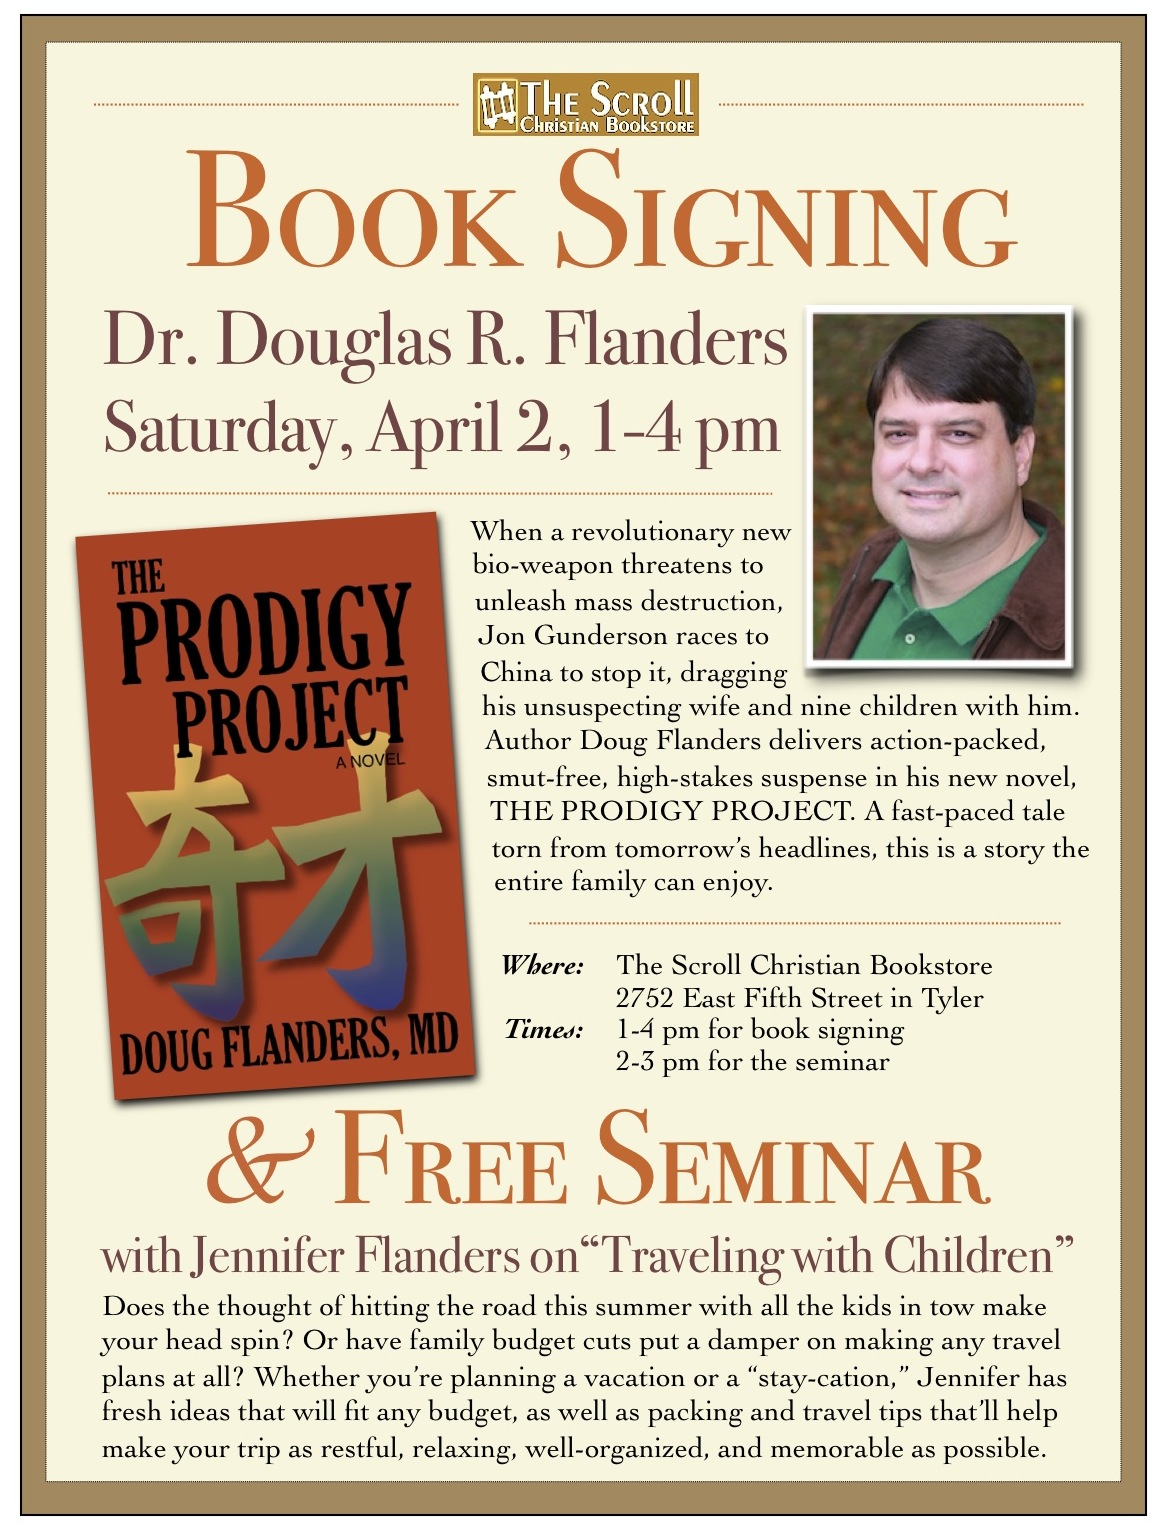 Book Signing/ Free Seminar at The Scroll